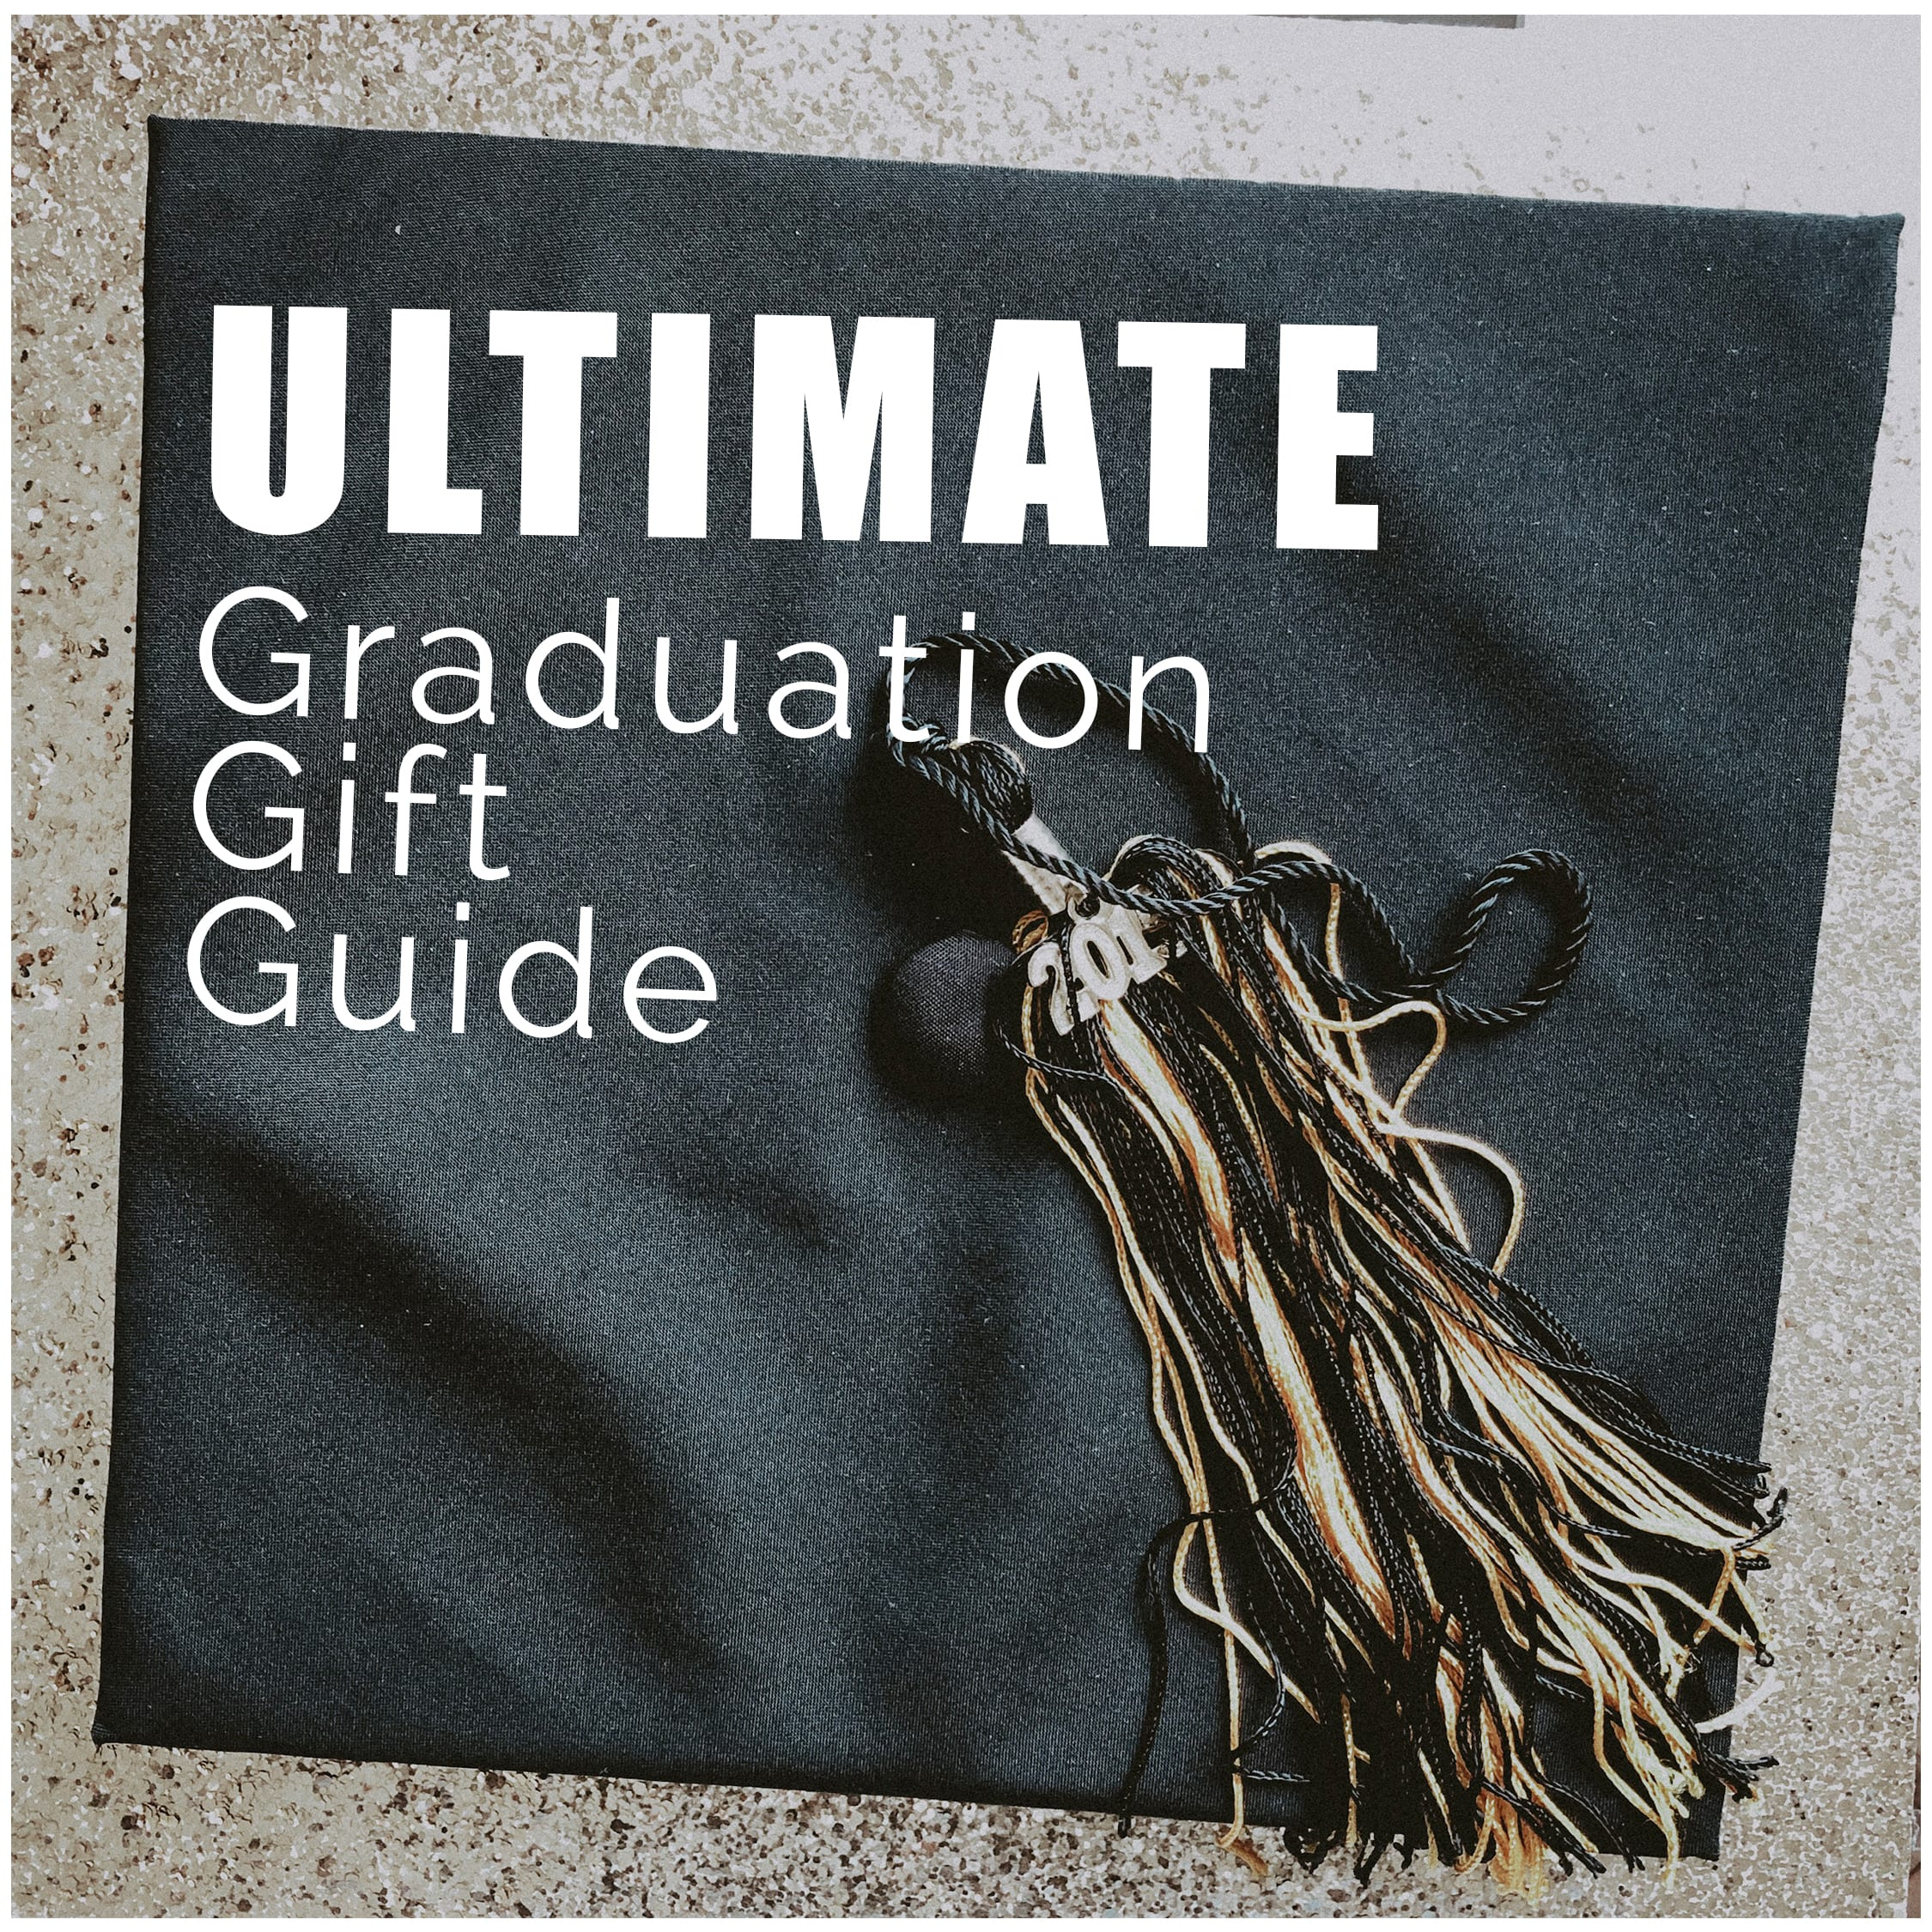 Ultimate Graduation Gift Guide